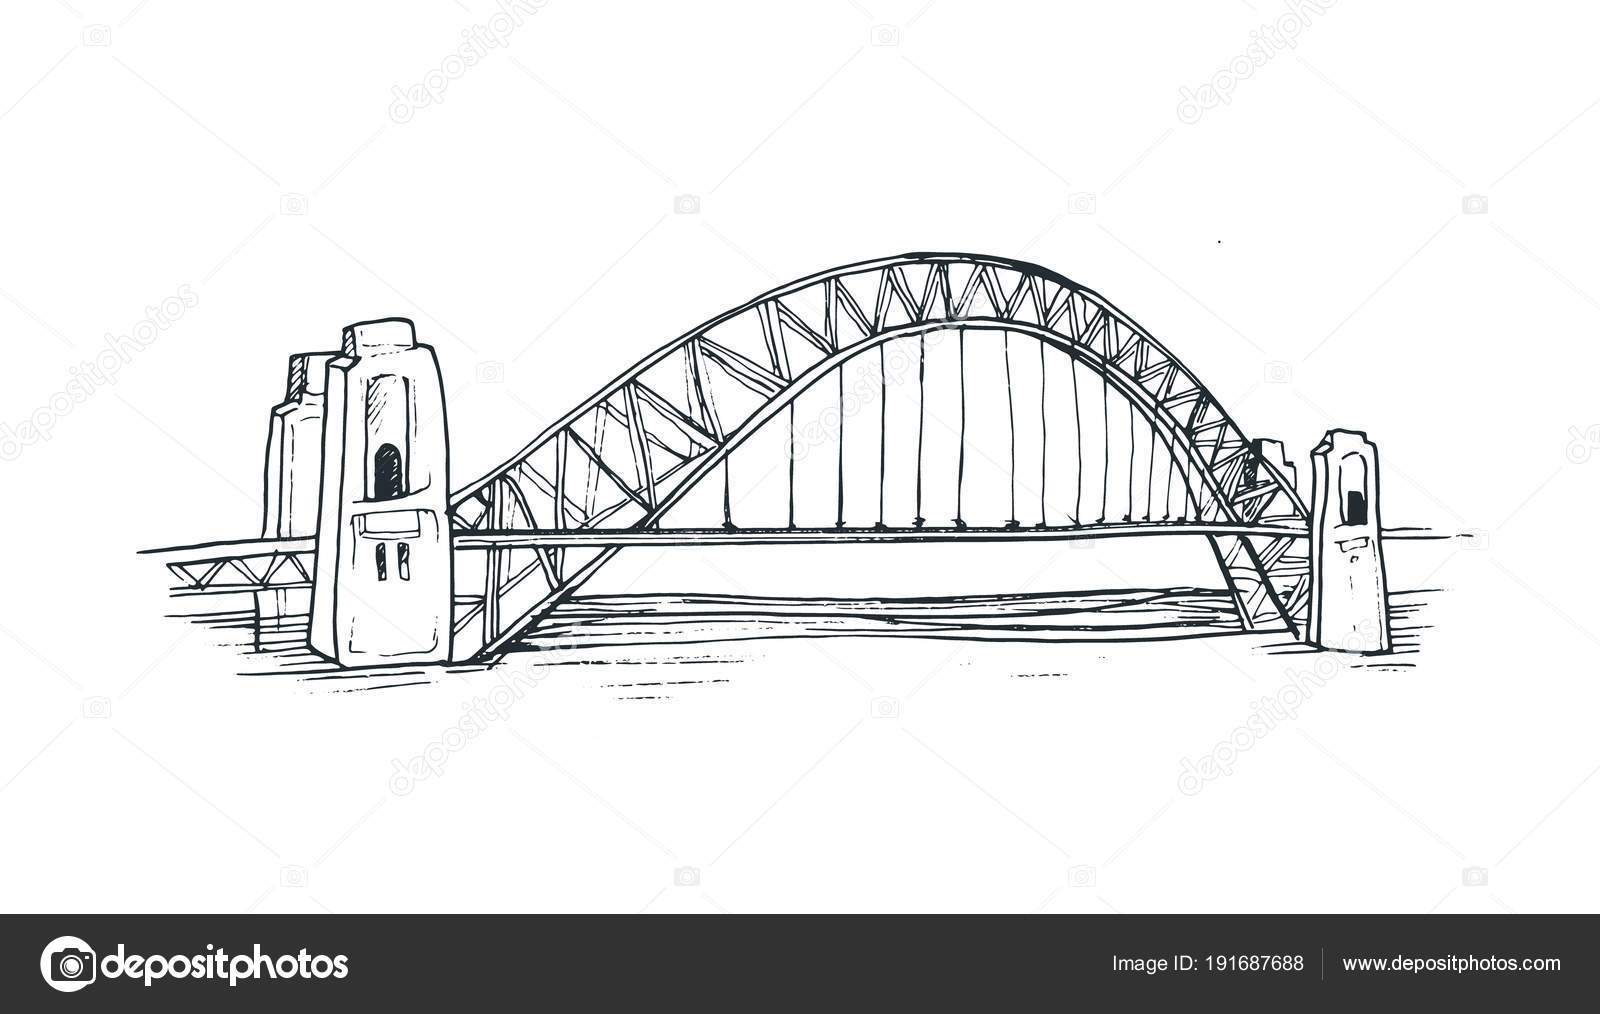 Sydney Harbour Bridge Stock Vector Ollymolly 191687688 Cantilever Diagram Related Keywords Illustration Isolated On White Backgroud Hand Drawn Famous Australian In Sketch Style By